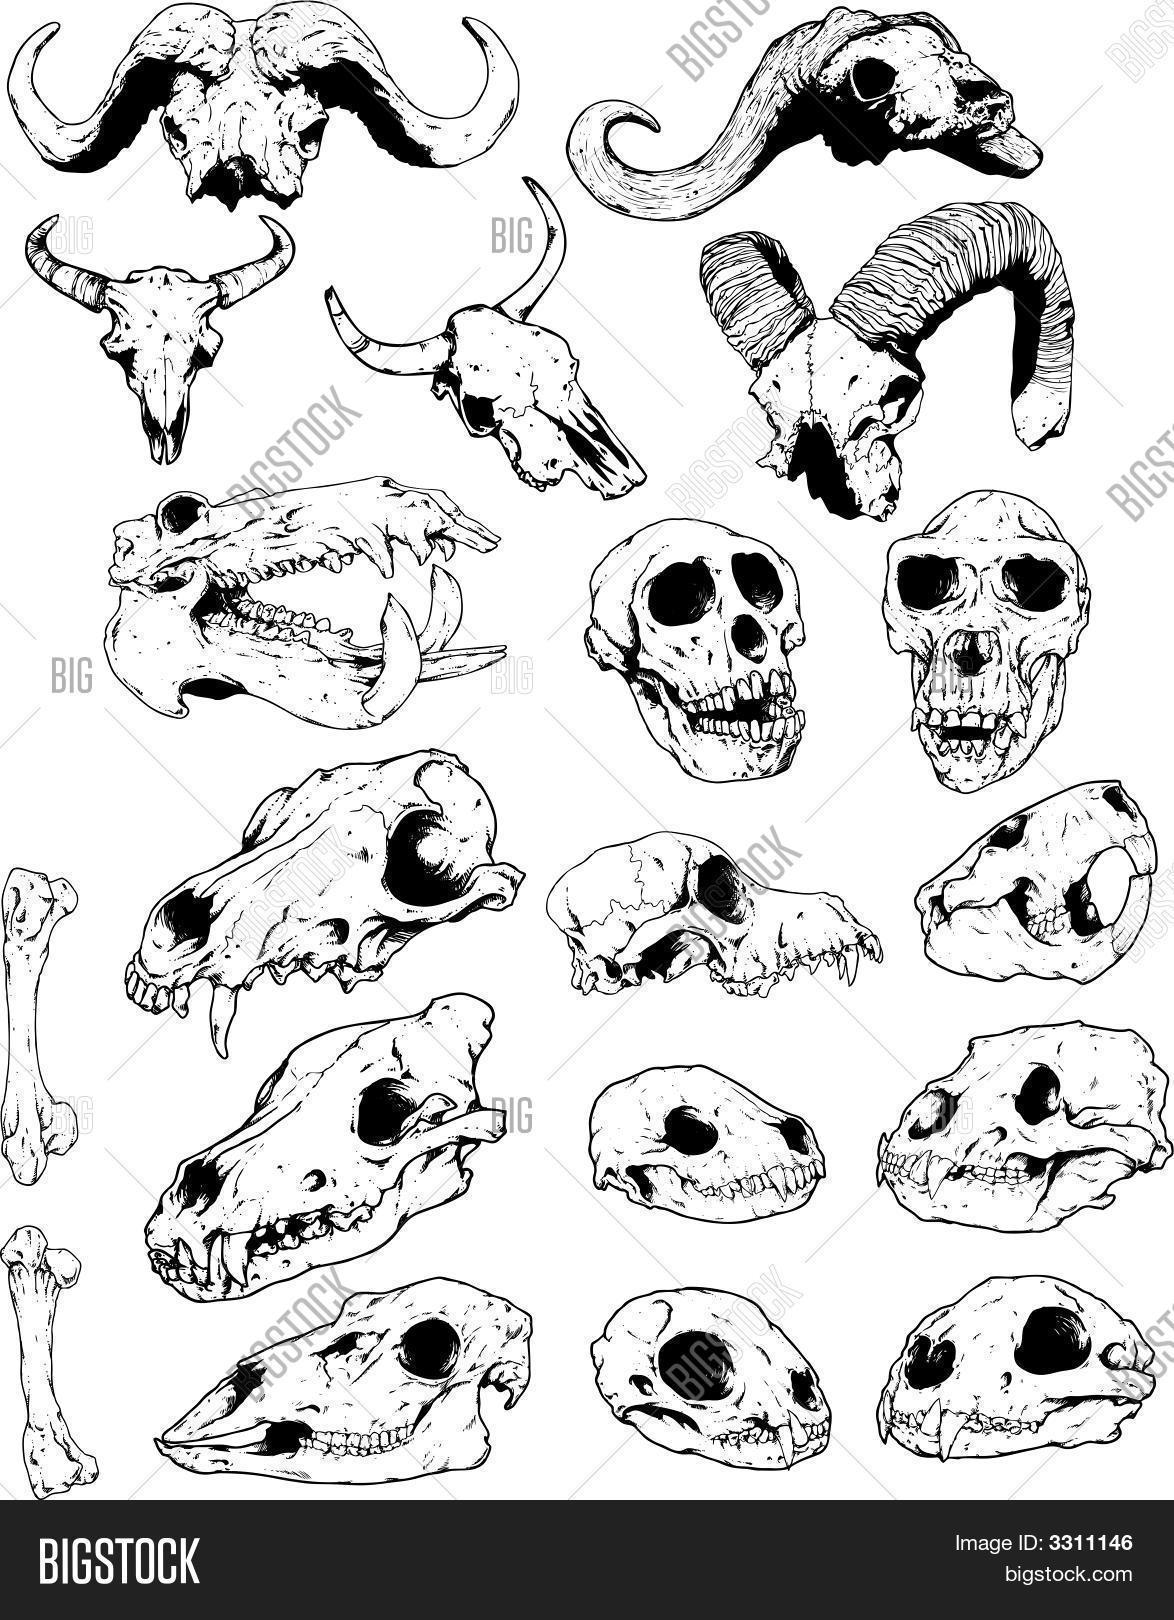 images of animal skull line drawing spacehero